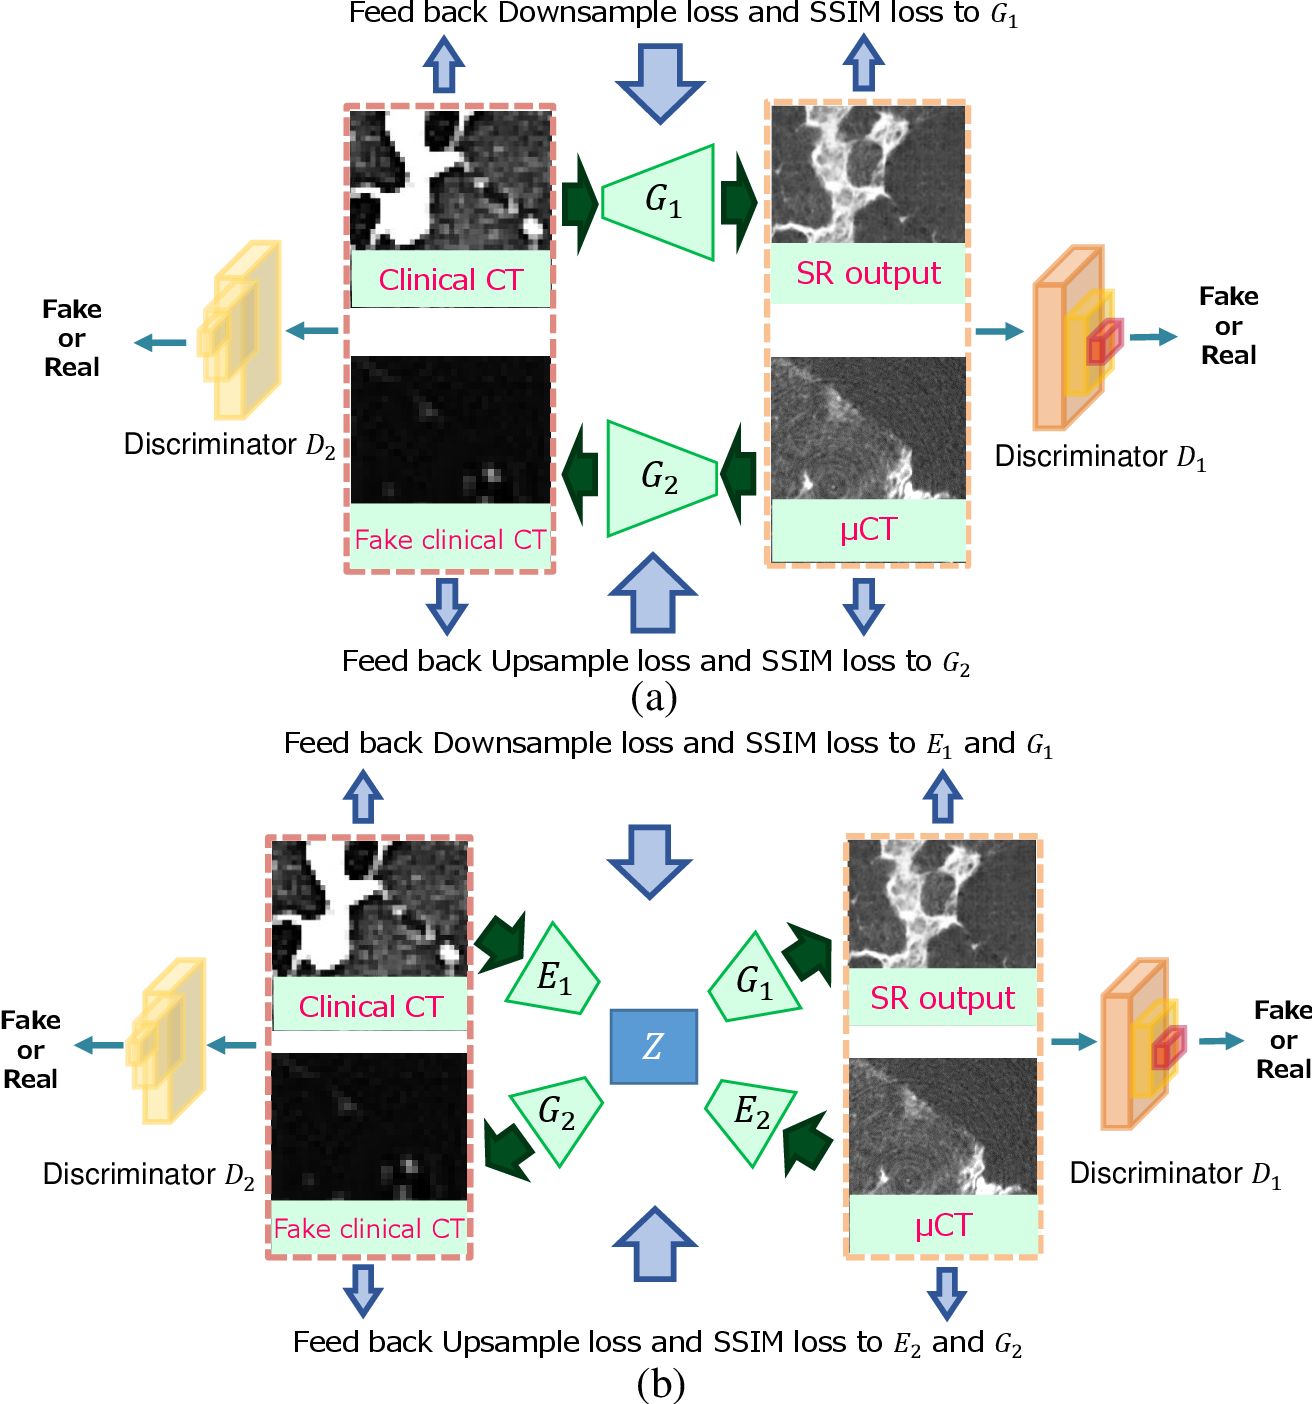 Figure 1 for Multi-modality super-resolution loss for GAN-based super-resolution of clinical CT images using micro CT image database